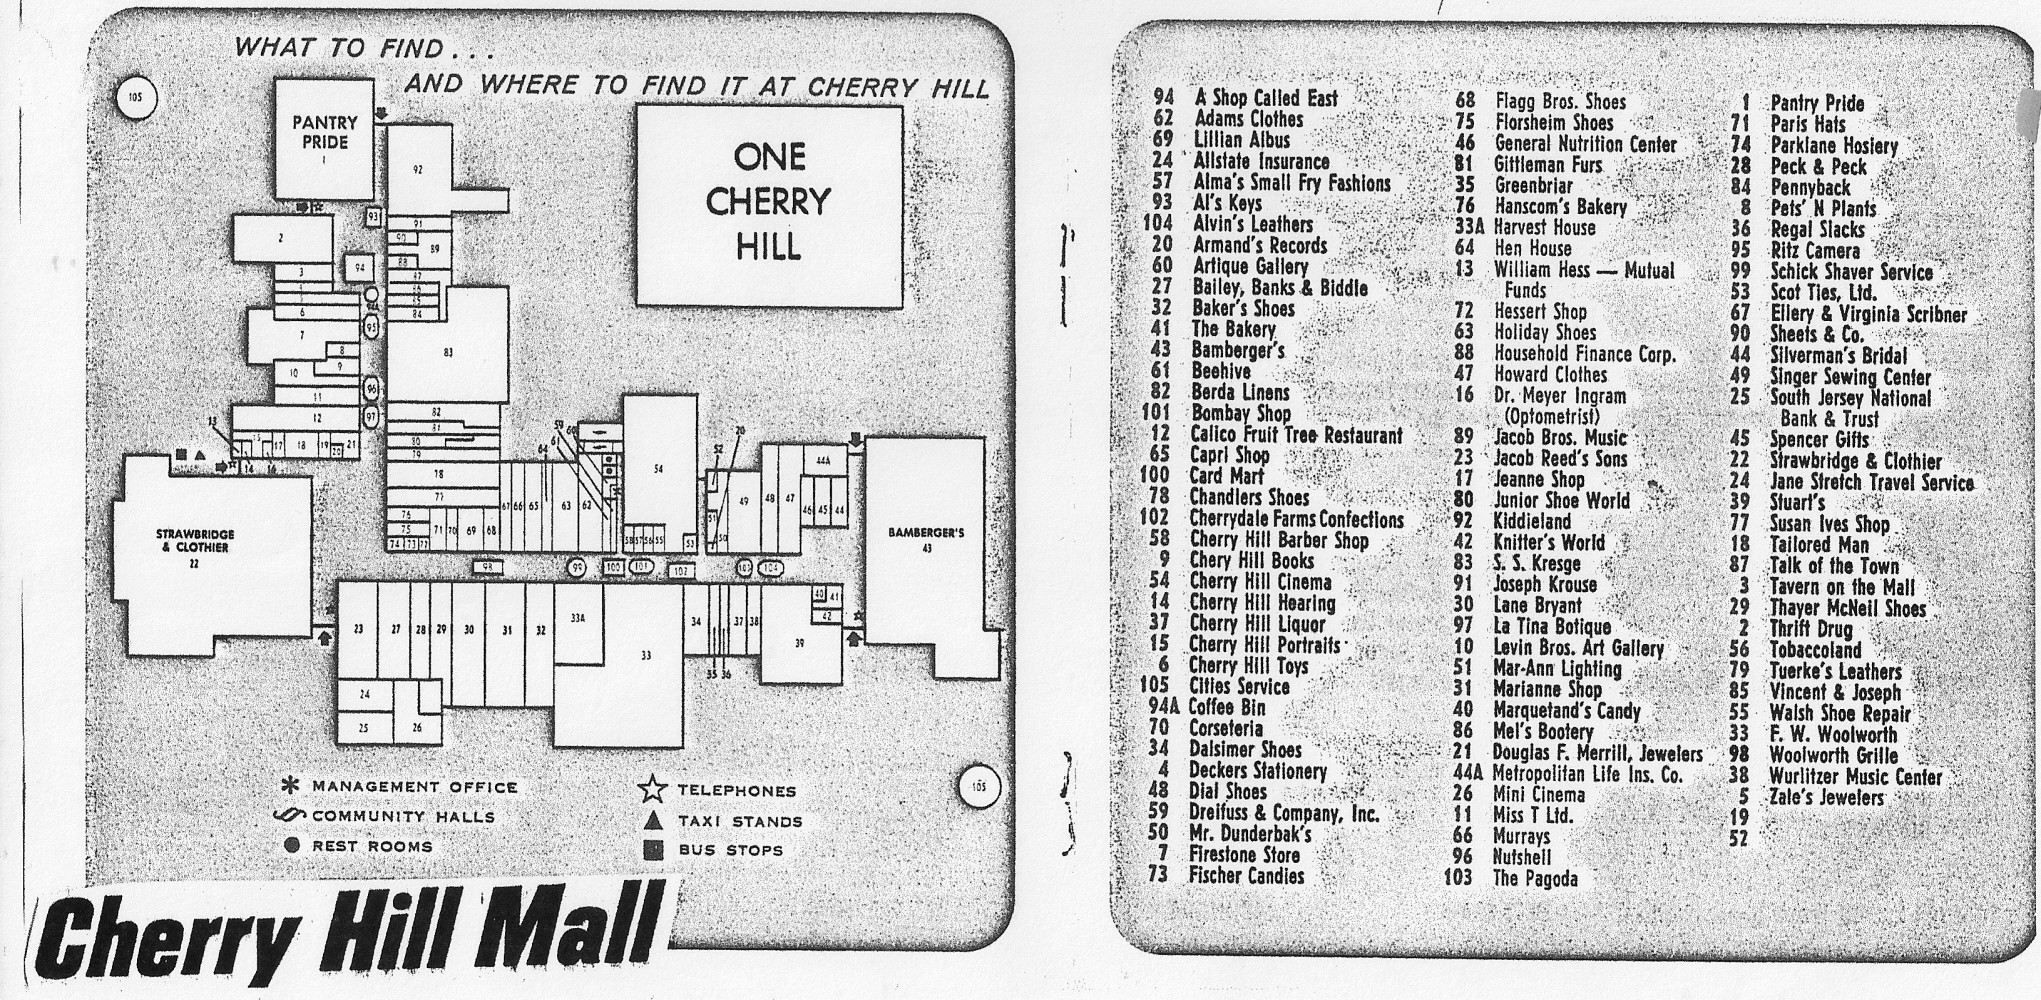 Cherry Hill Mall Map From Brochure